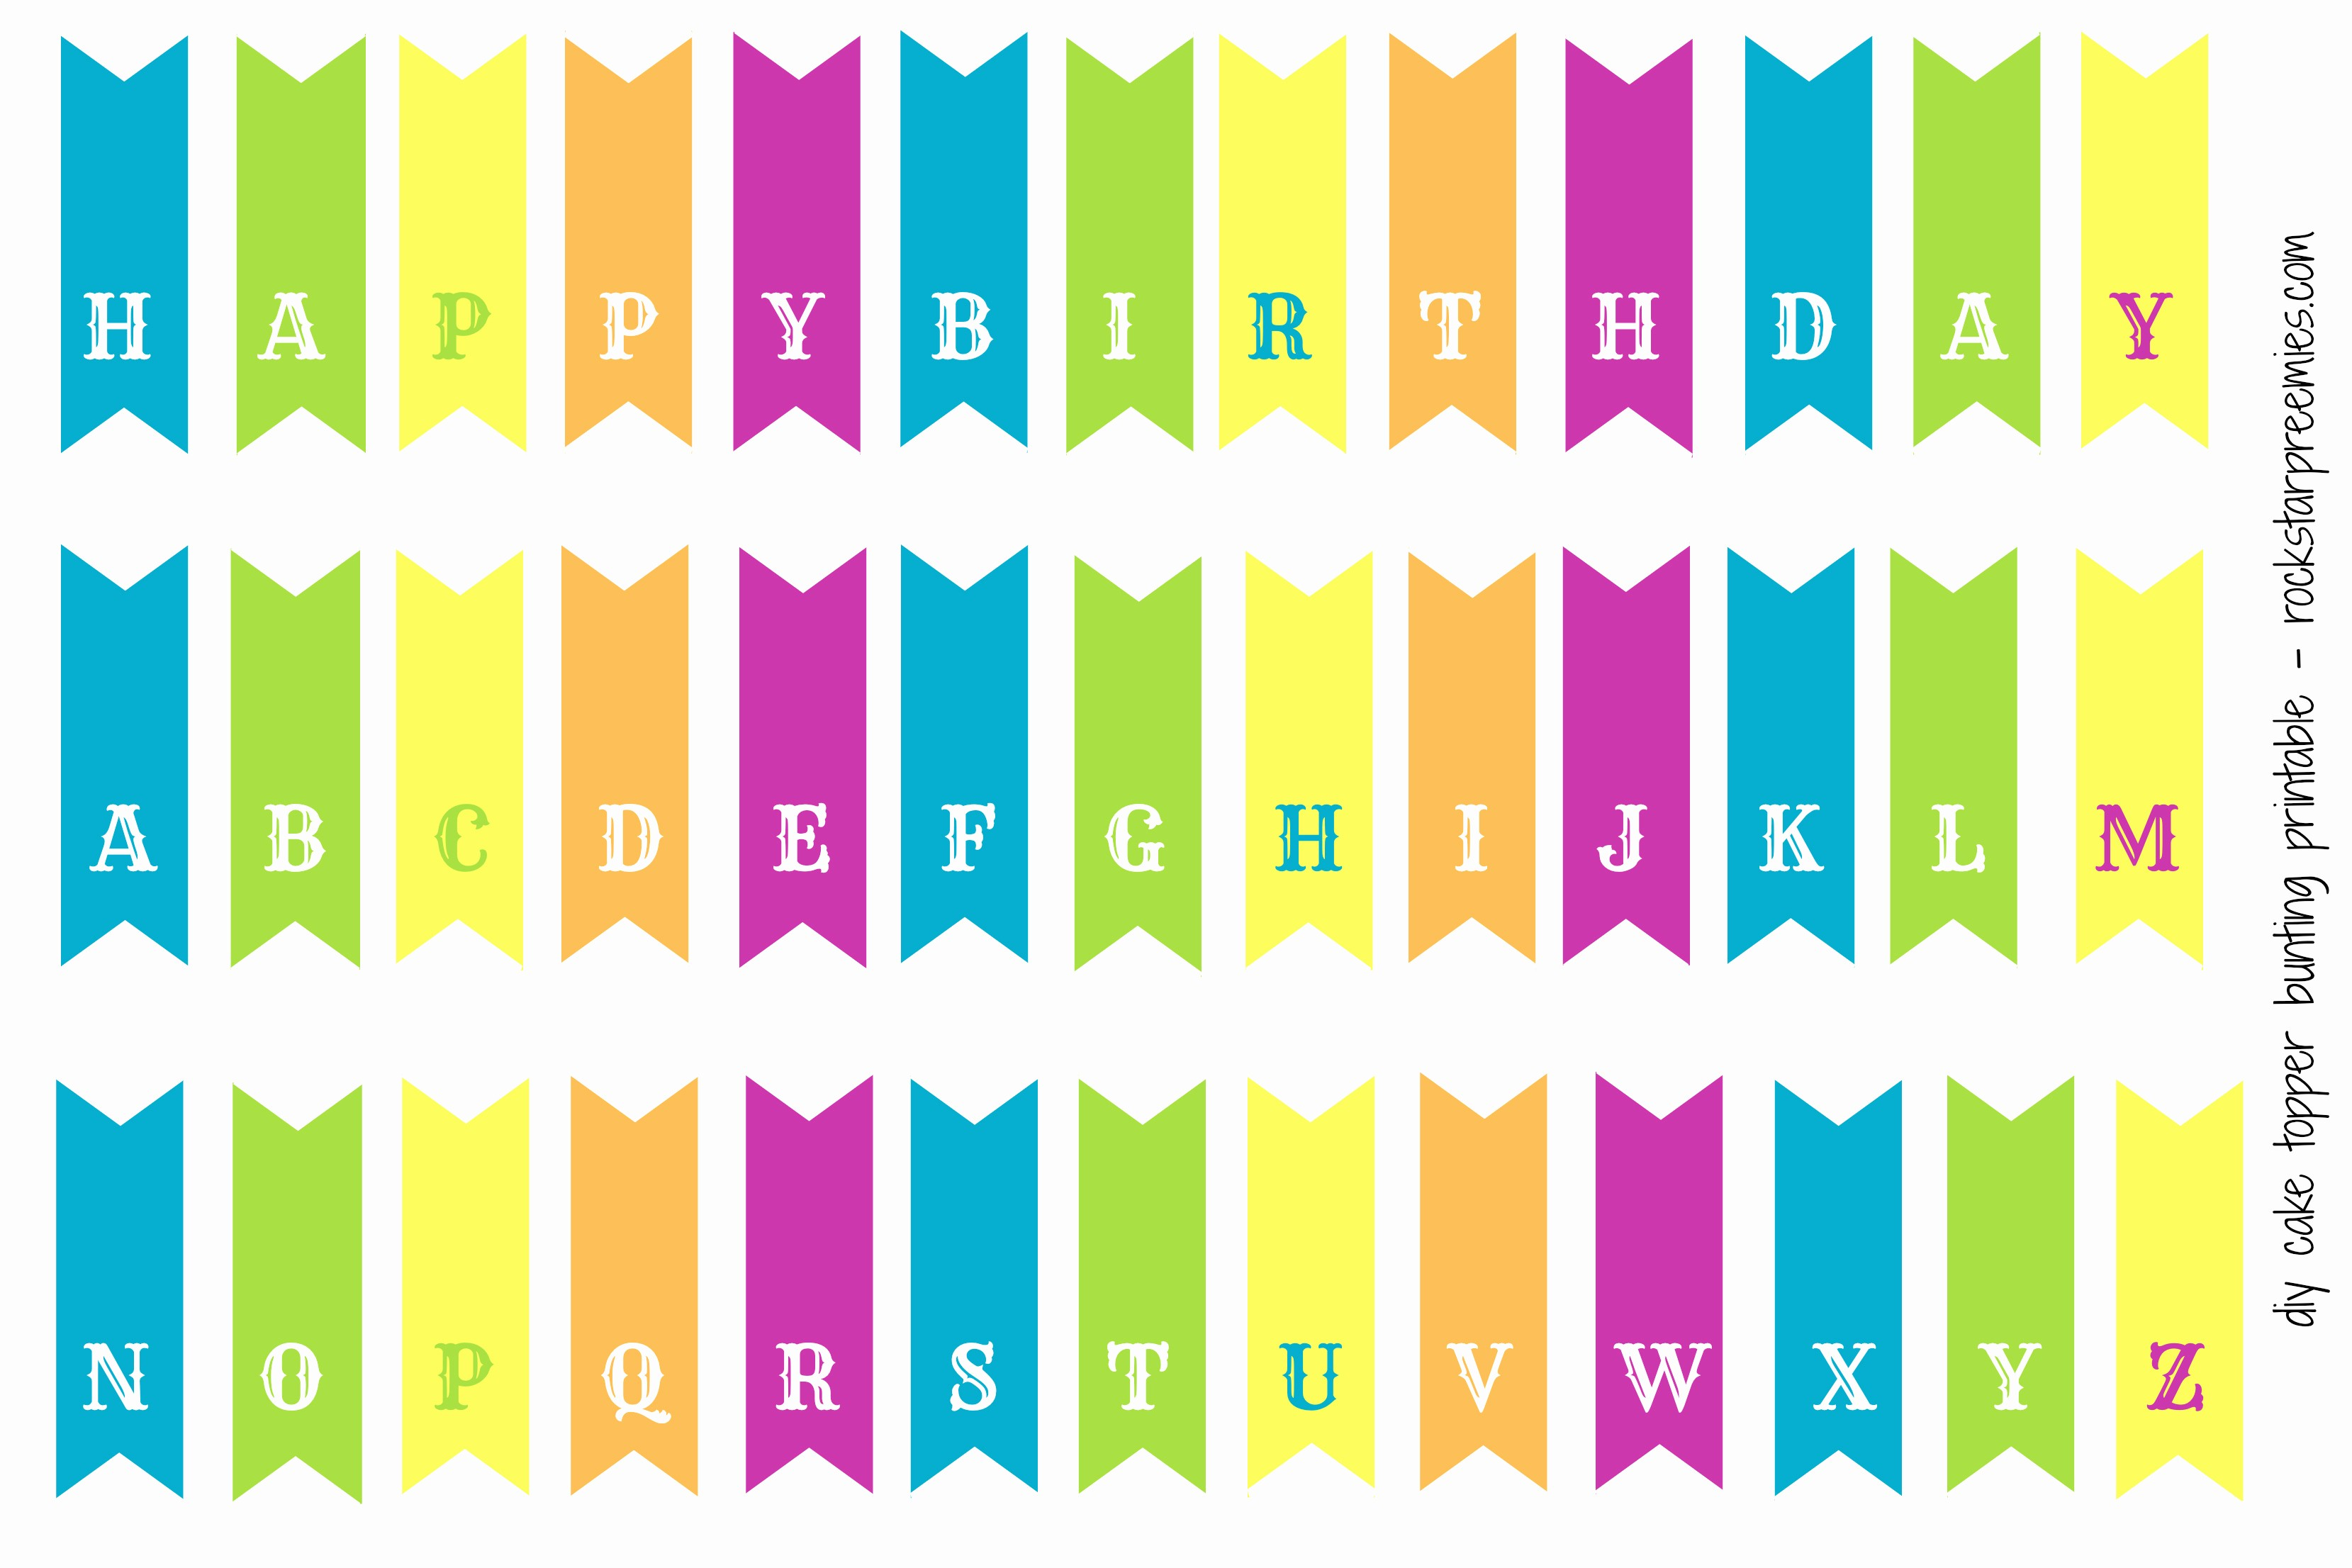 Happy Birthday Banner Print Out Unique Happy Birthday Bunting Printable Printable 360 Degree